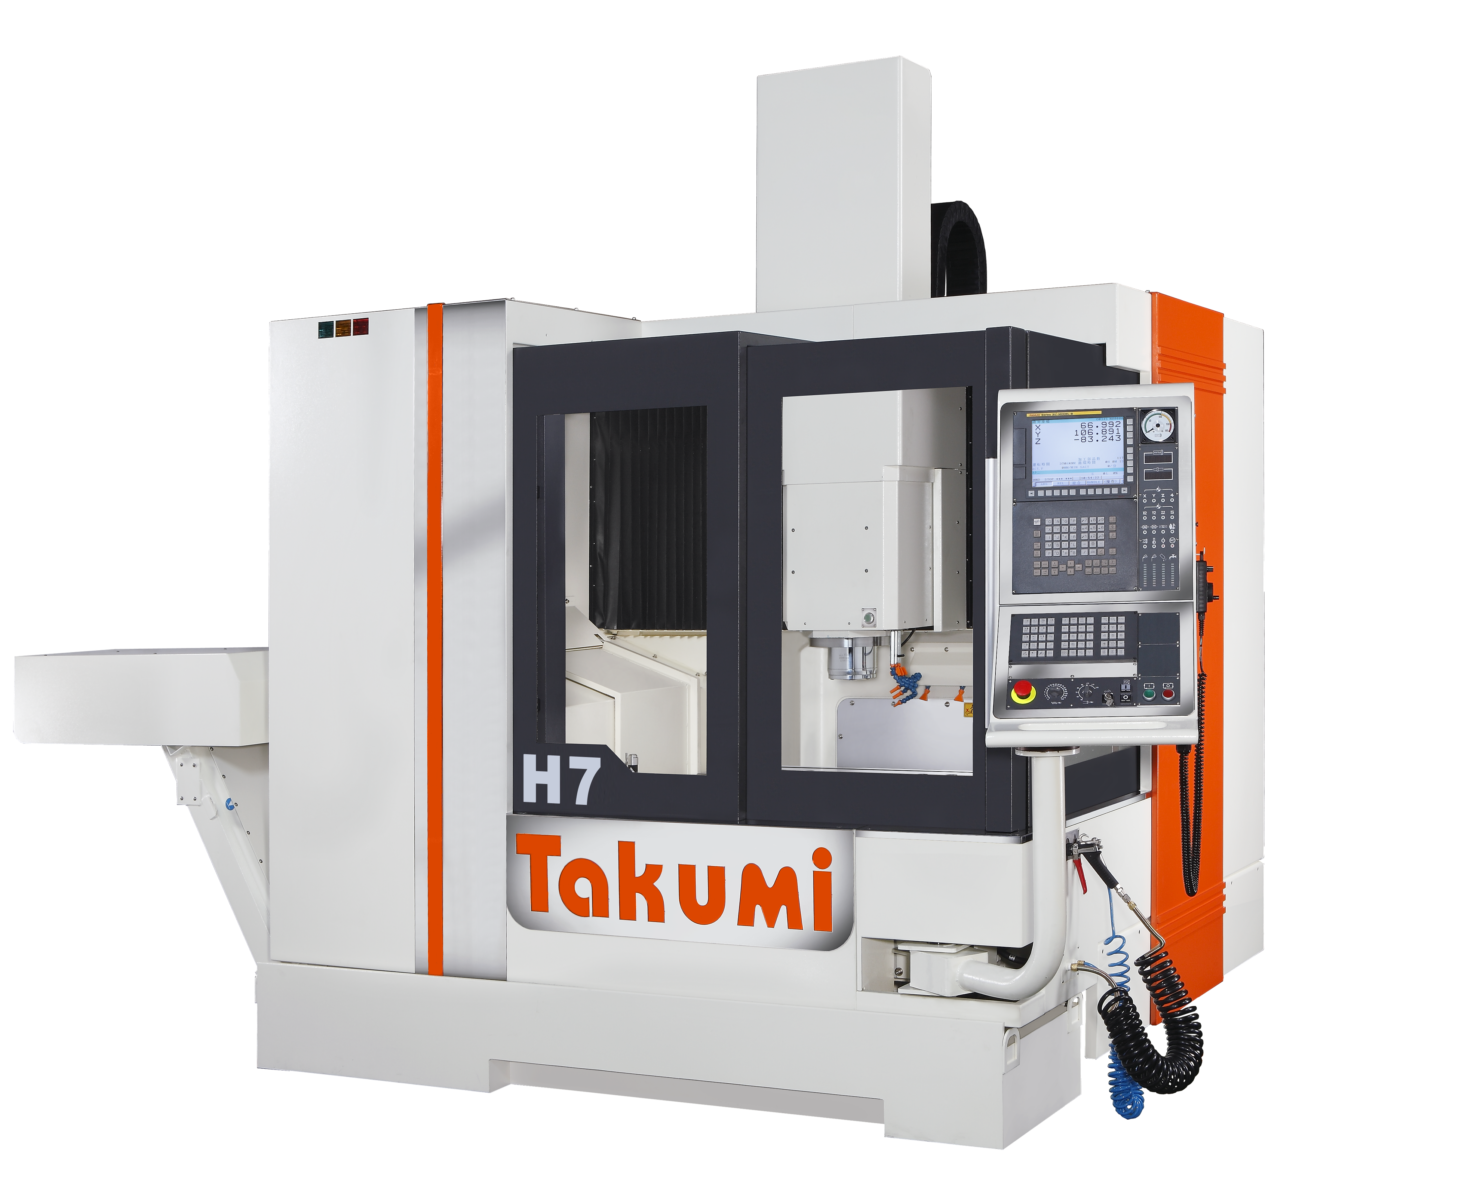 Takumi H7: 3-axis Machining Center  with Heidenhain-Control for Die & Mold.